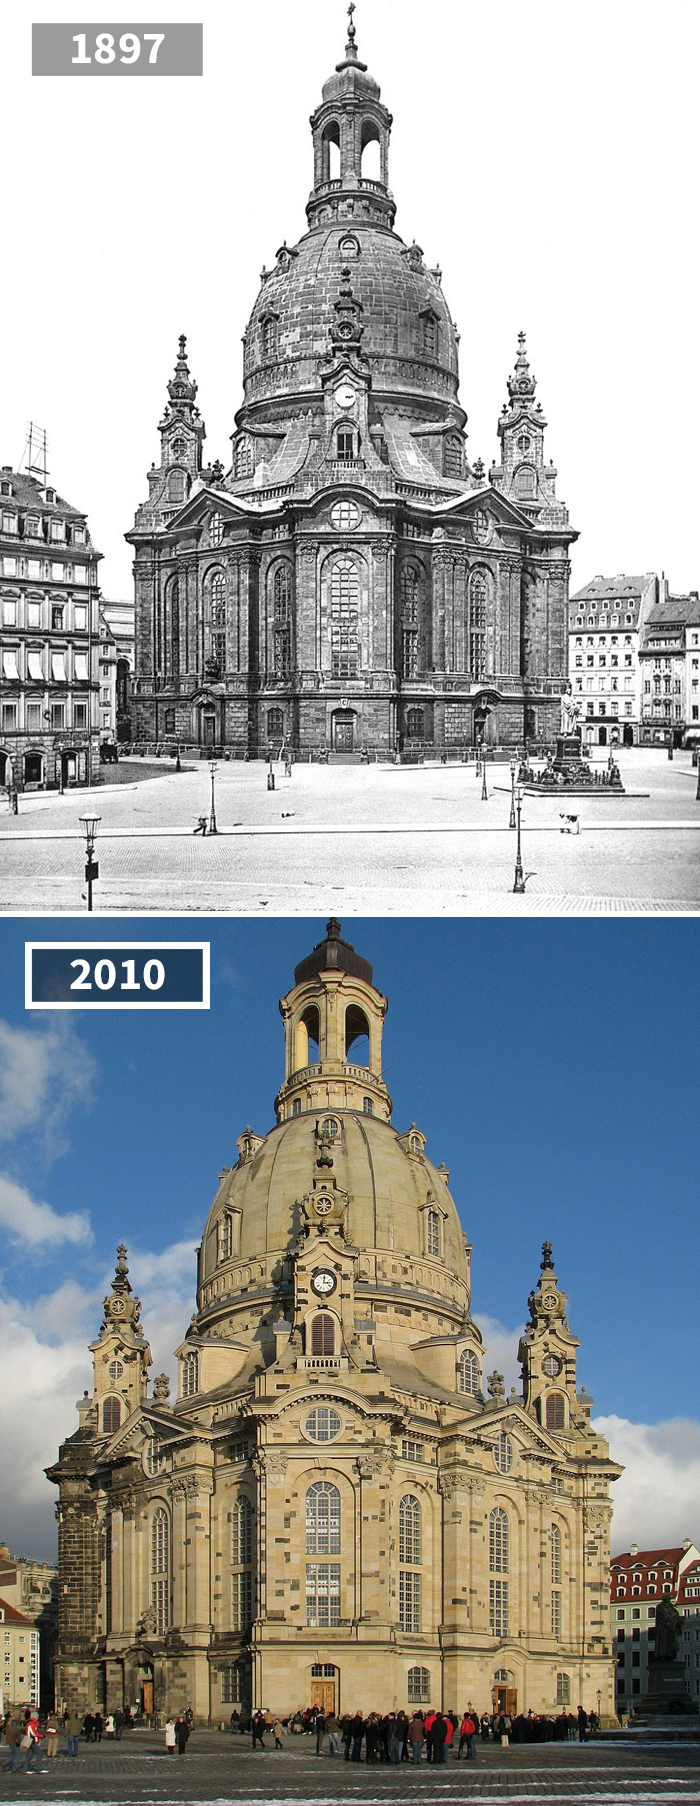 then-and-now-pictures-changing-world-rephotos-60-5a0d76c954777__700